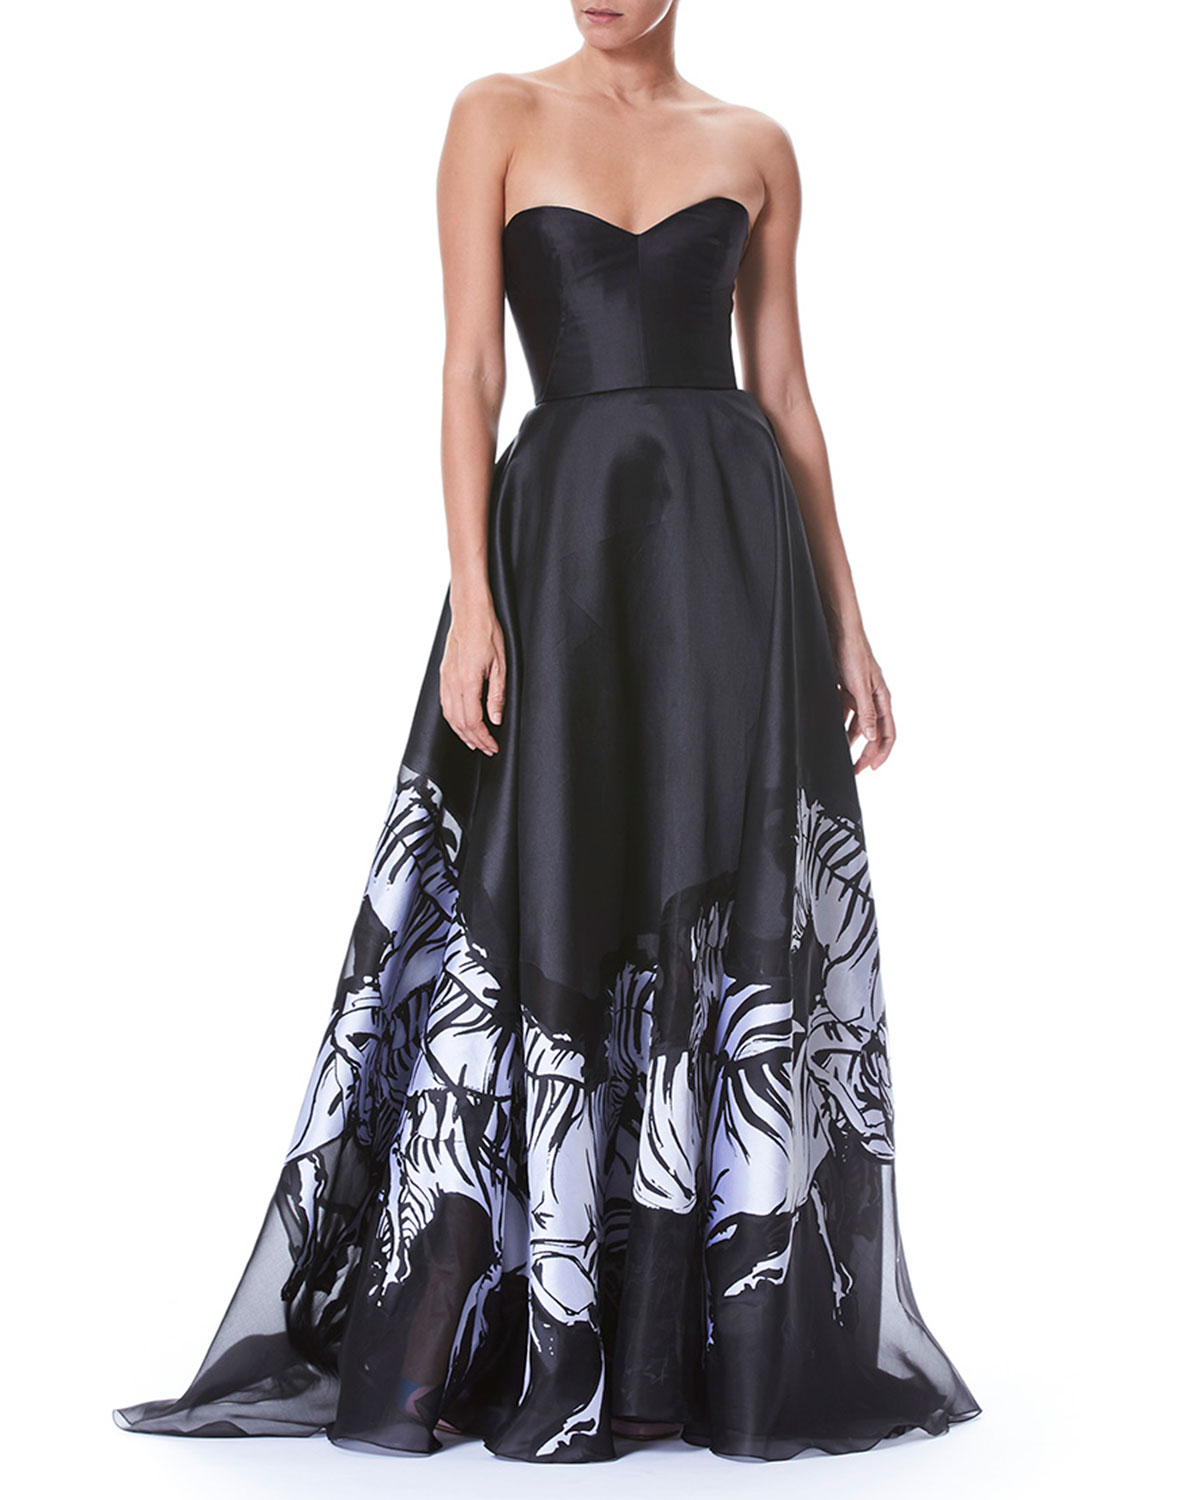 Strapless Belted Bustier Zebra-Print Evening Gown